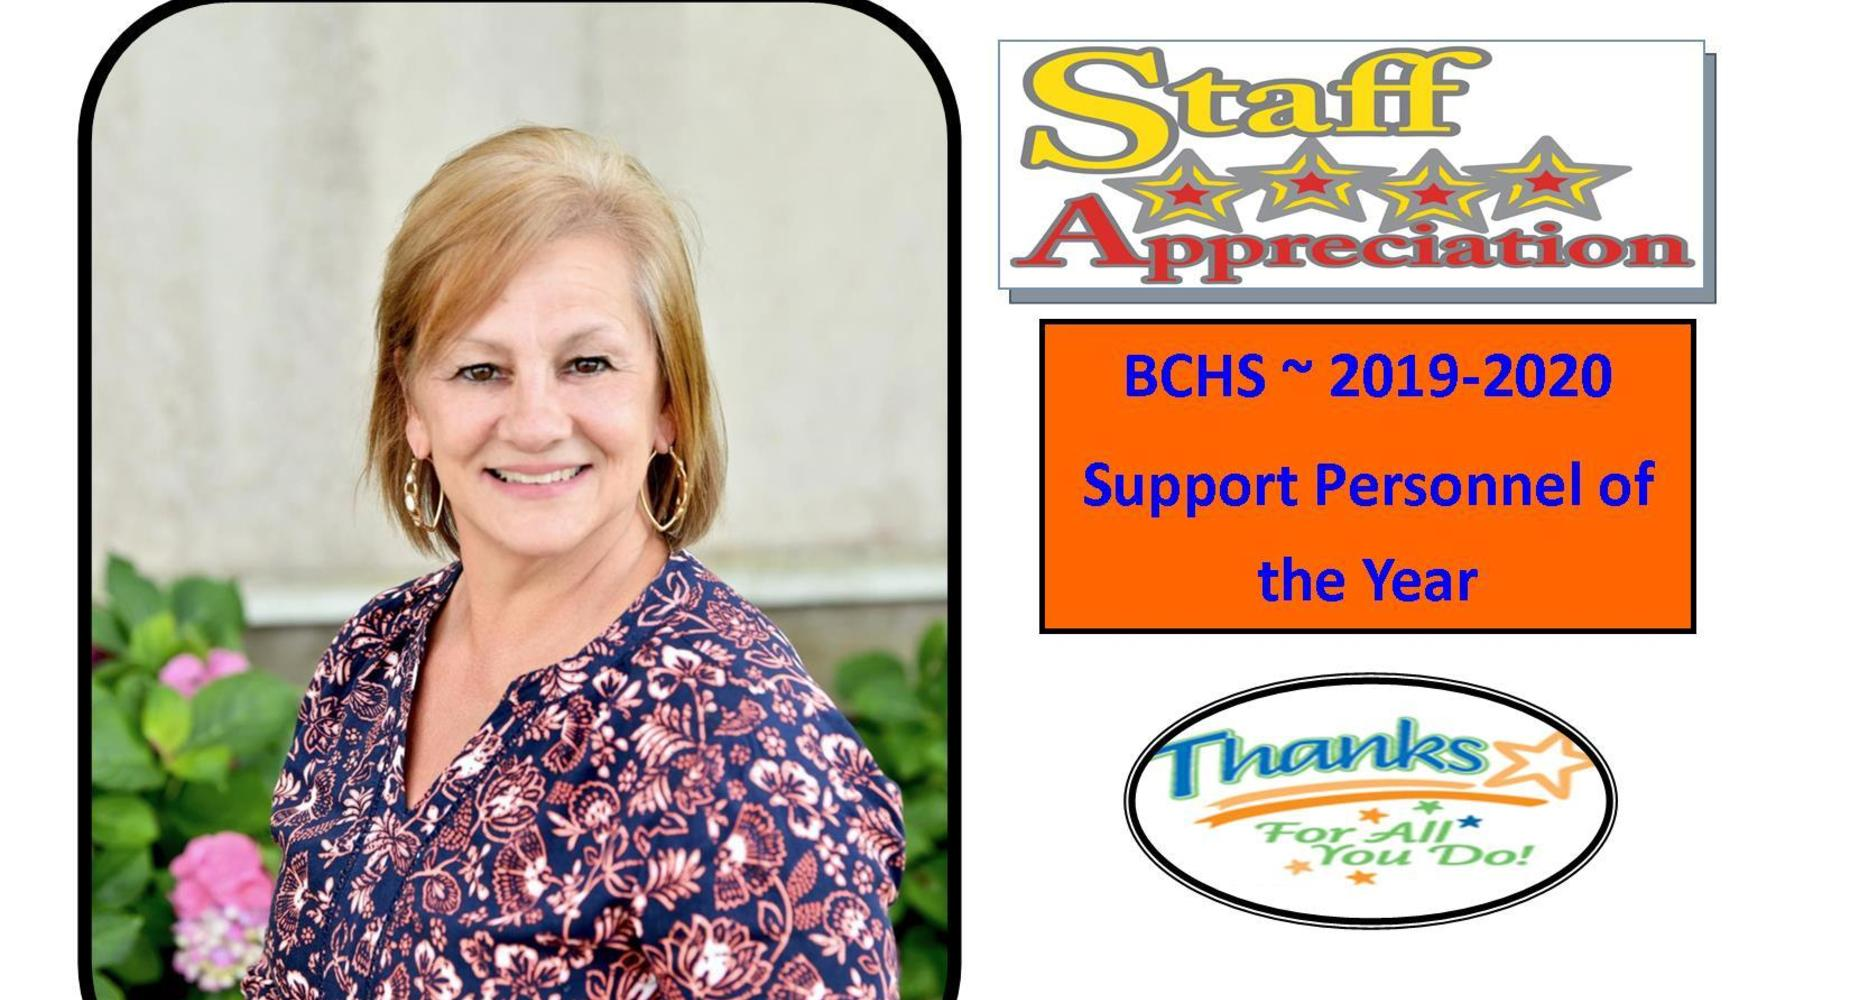 2019-2020 - Support Personnel of the Year - Mrs. Fay Leger